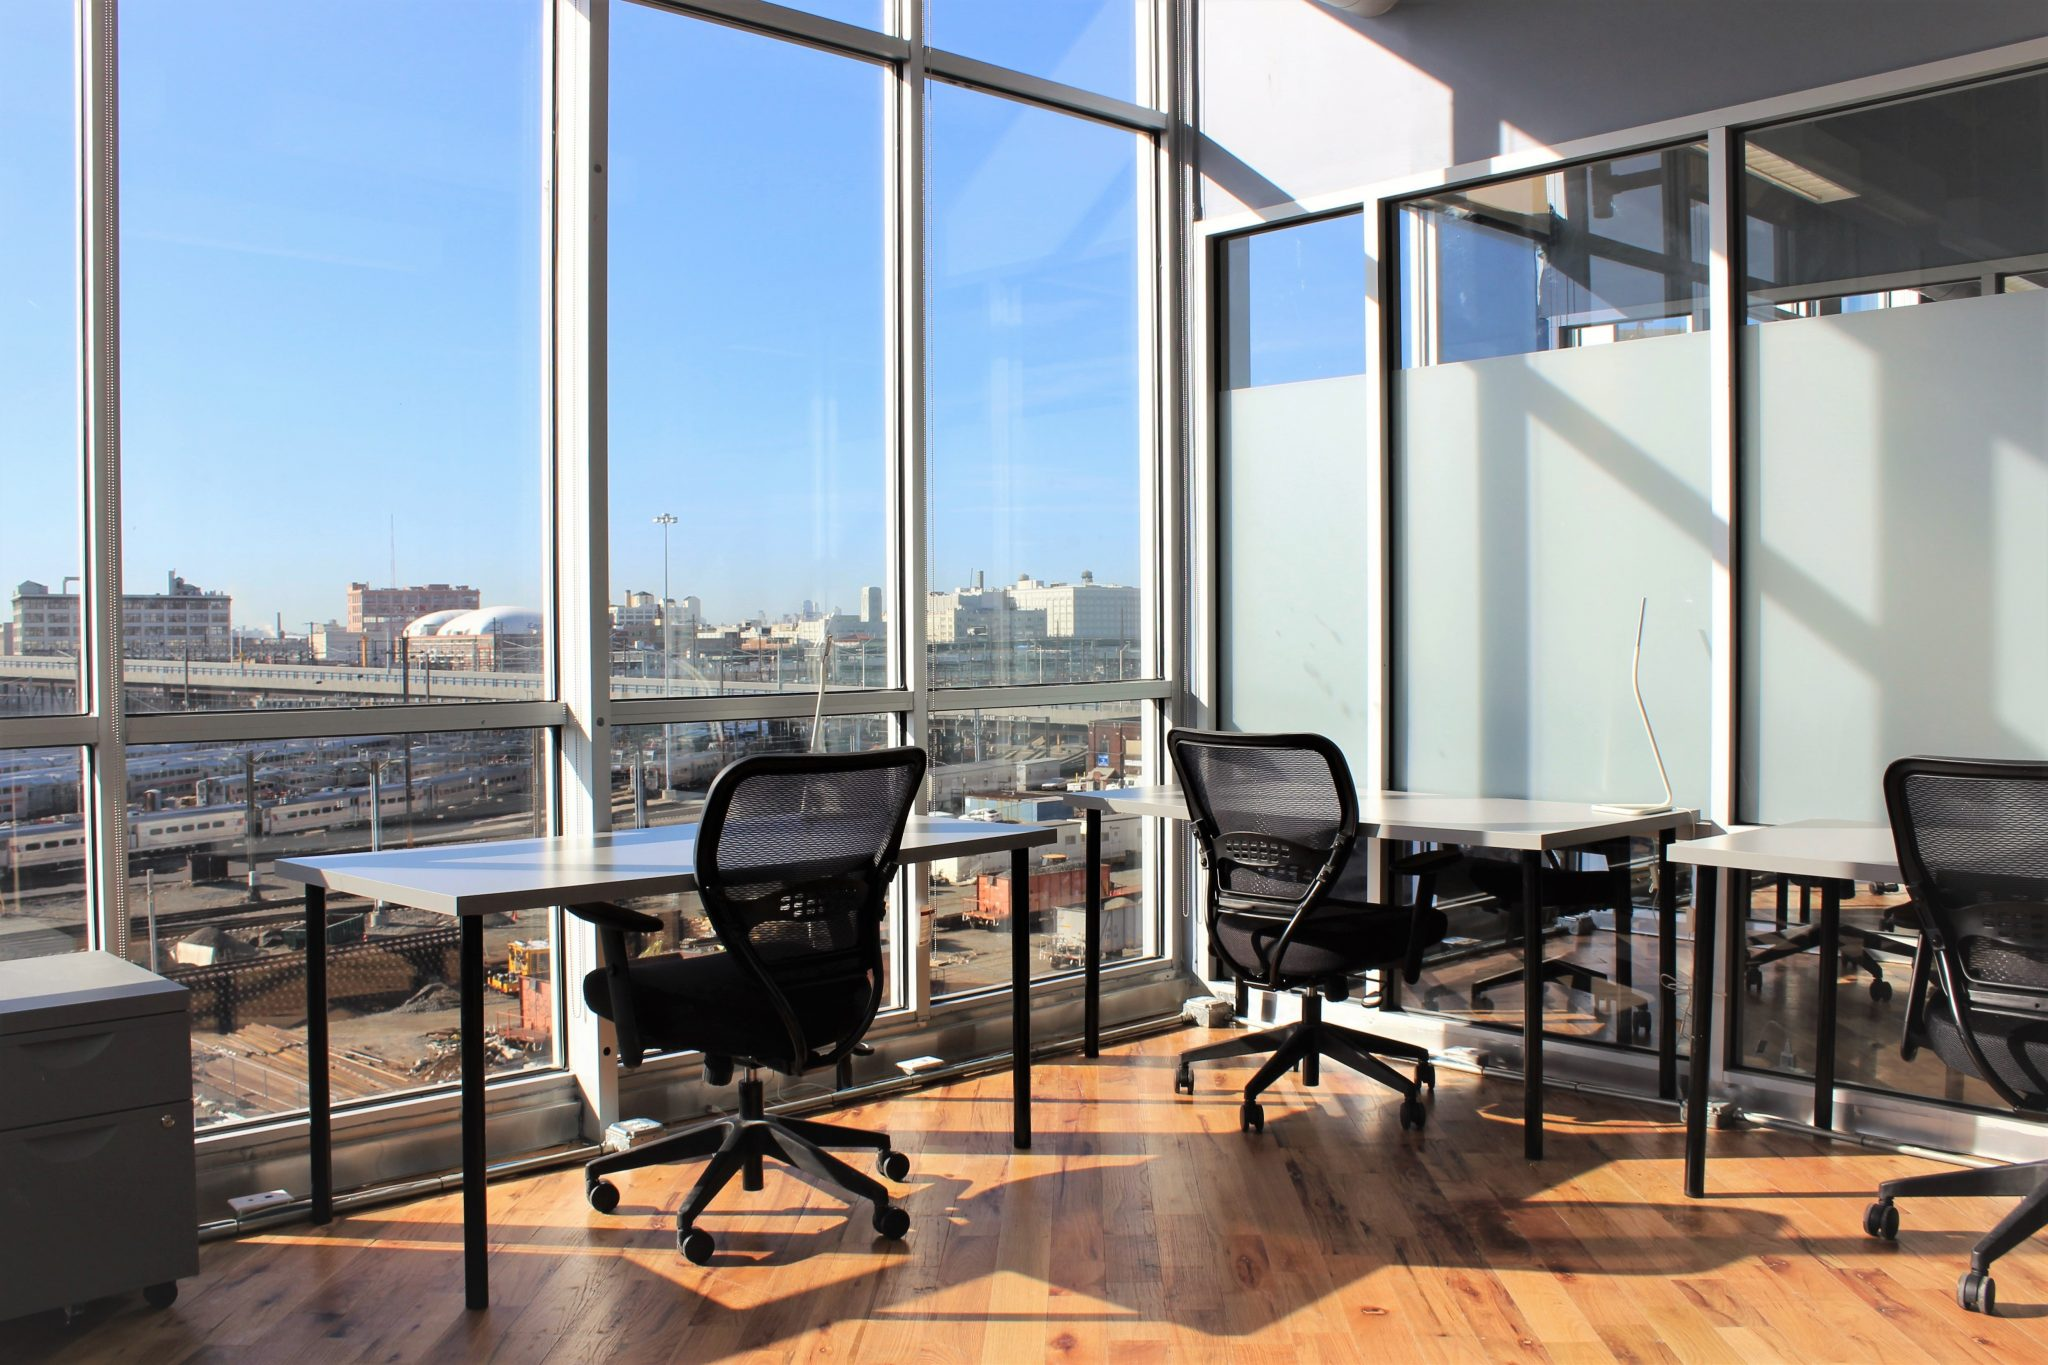 34-18 Northern BLVD — Turnkey Office Spaces in Long Island City